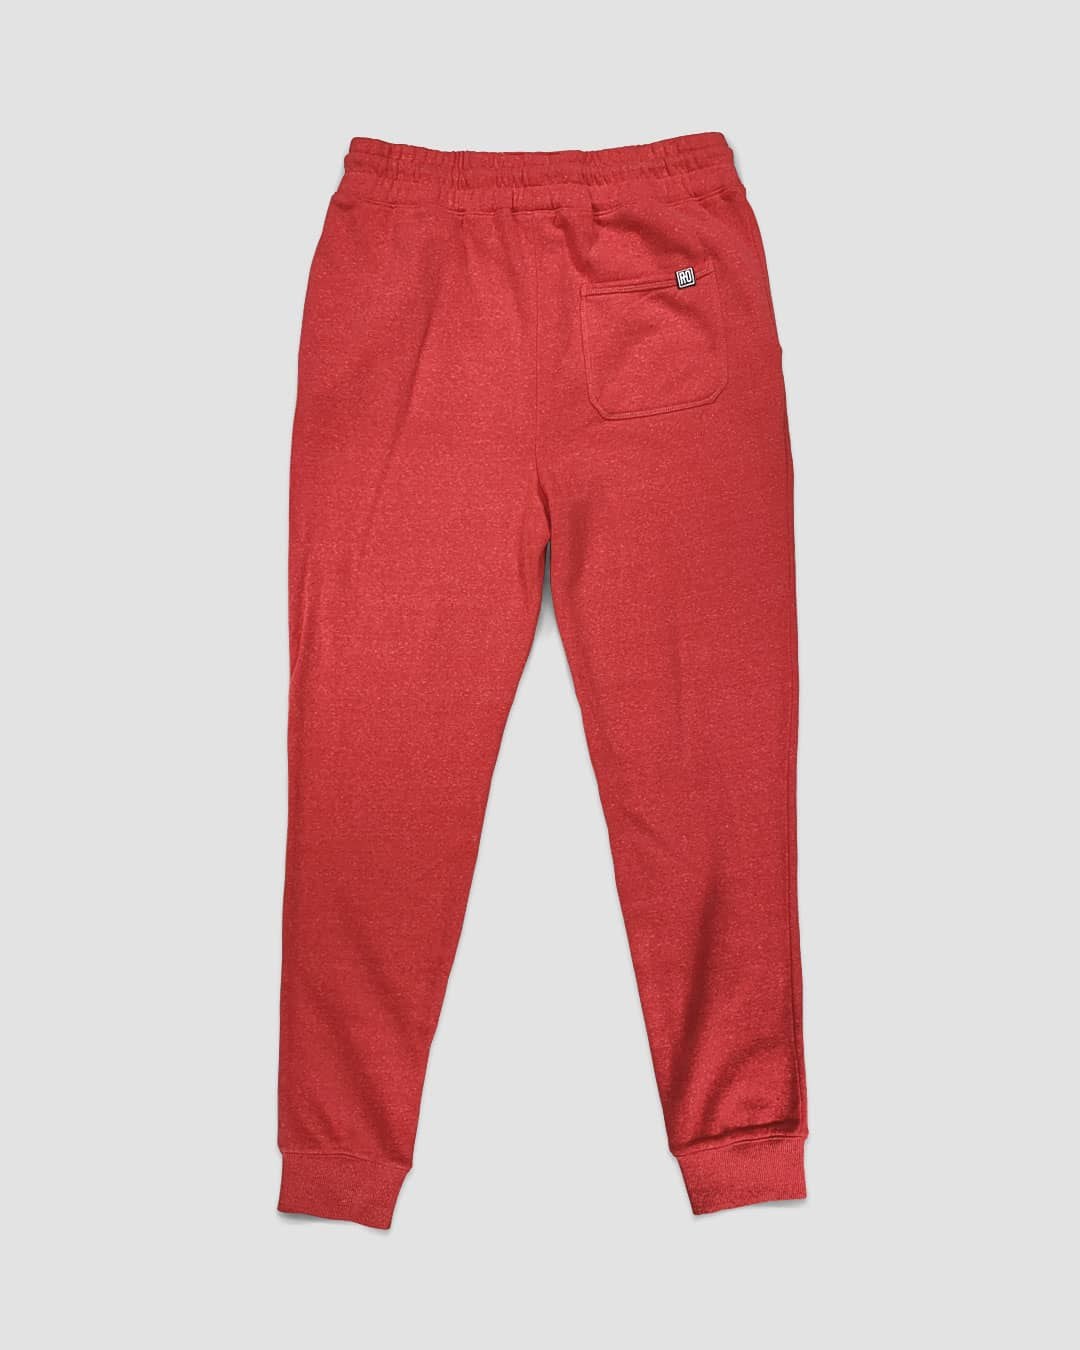 "Larry Holmes ""LH"" Sweatpants - Roots of Inc dba Roots of Fight"